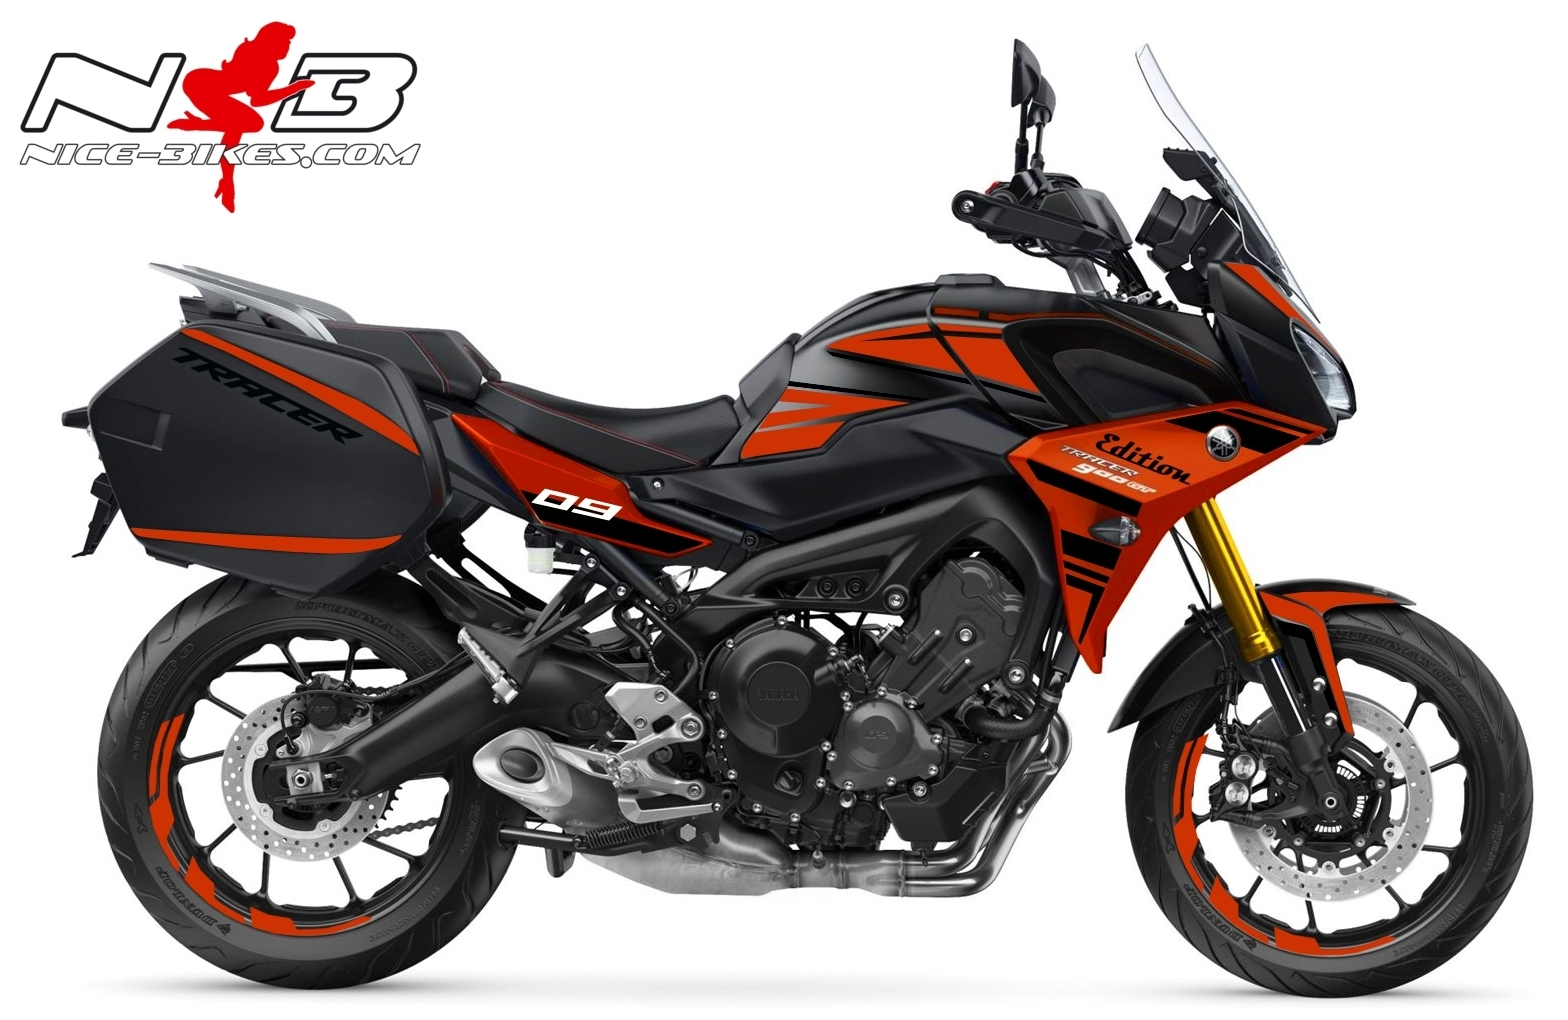 Foliendesign YAMAHA MT09 Tracer Bj. 2020 Racing Red